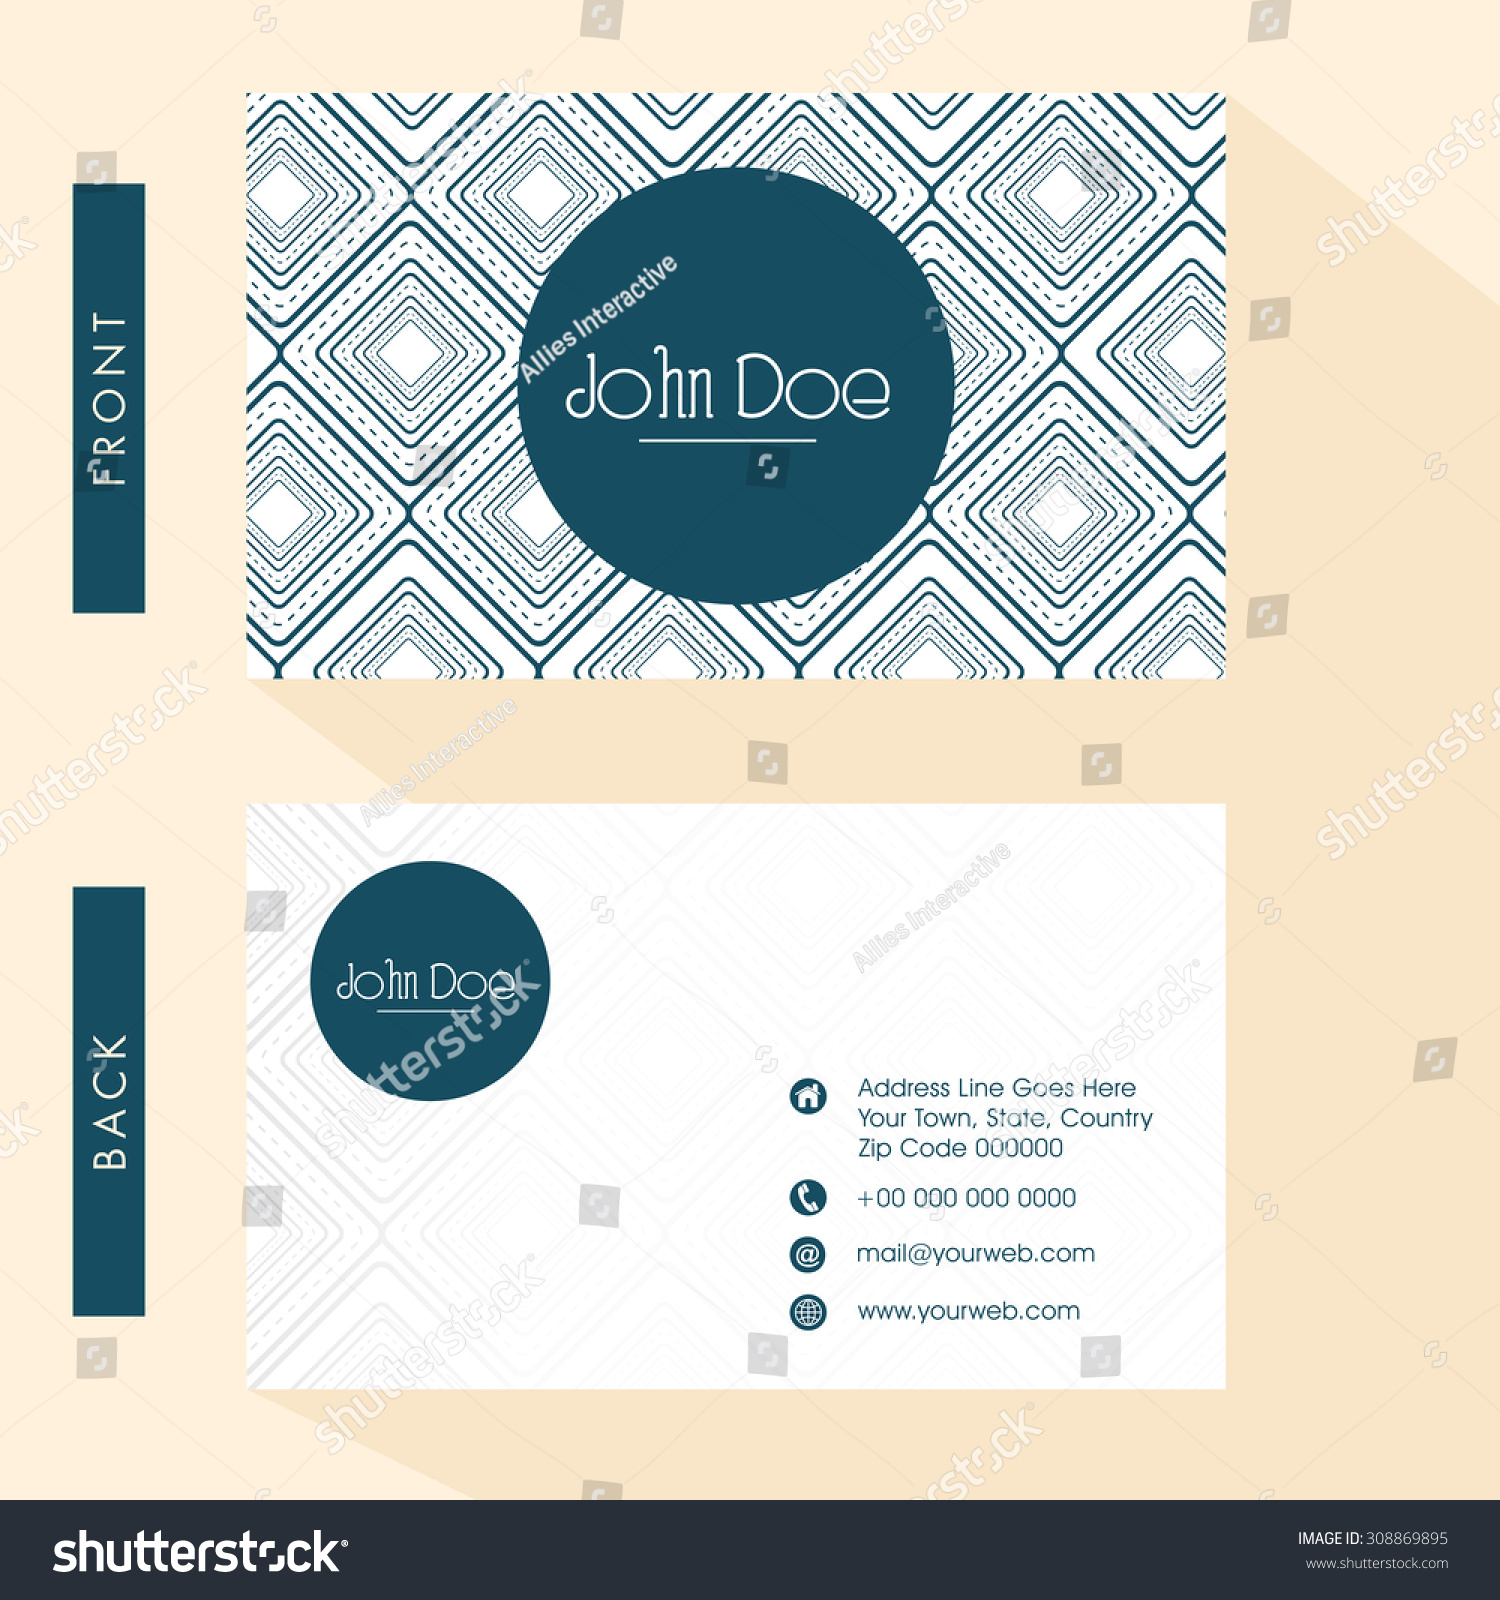 Floral Design Decorated Business Card Visiting Stock Vector ...